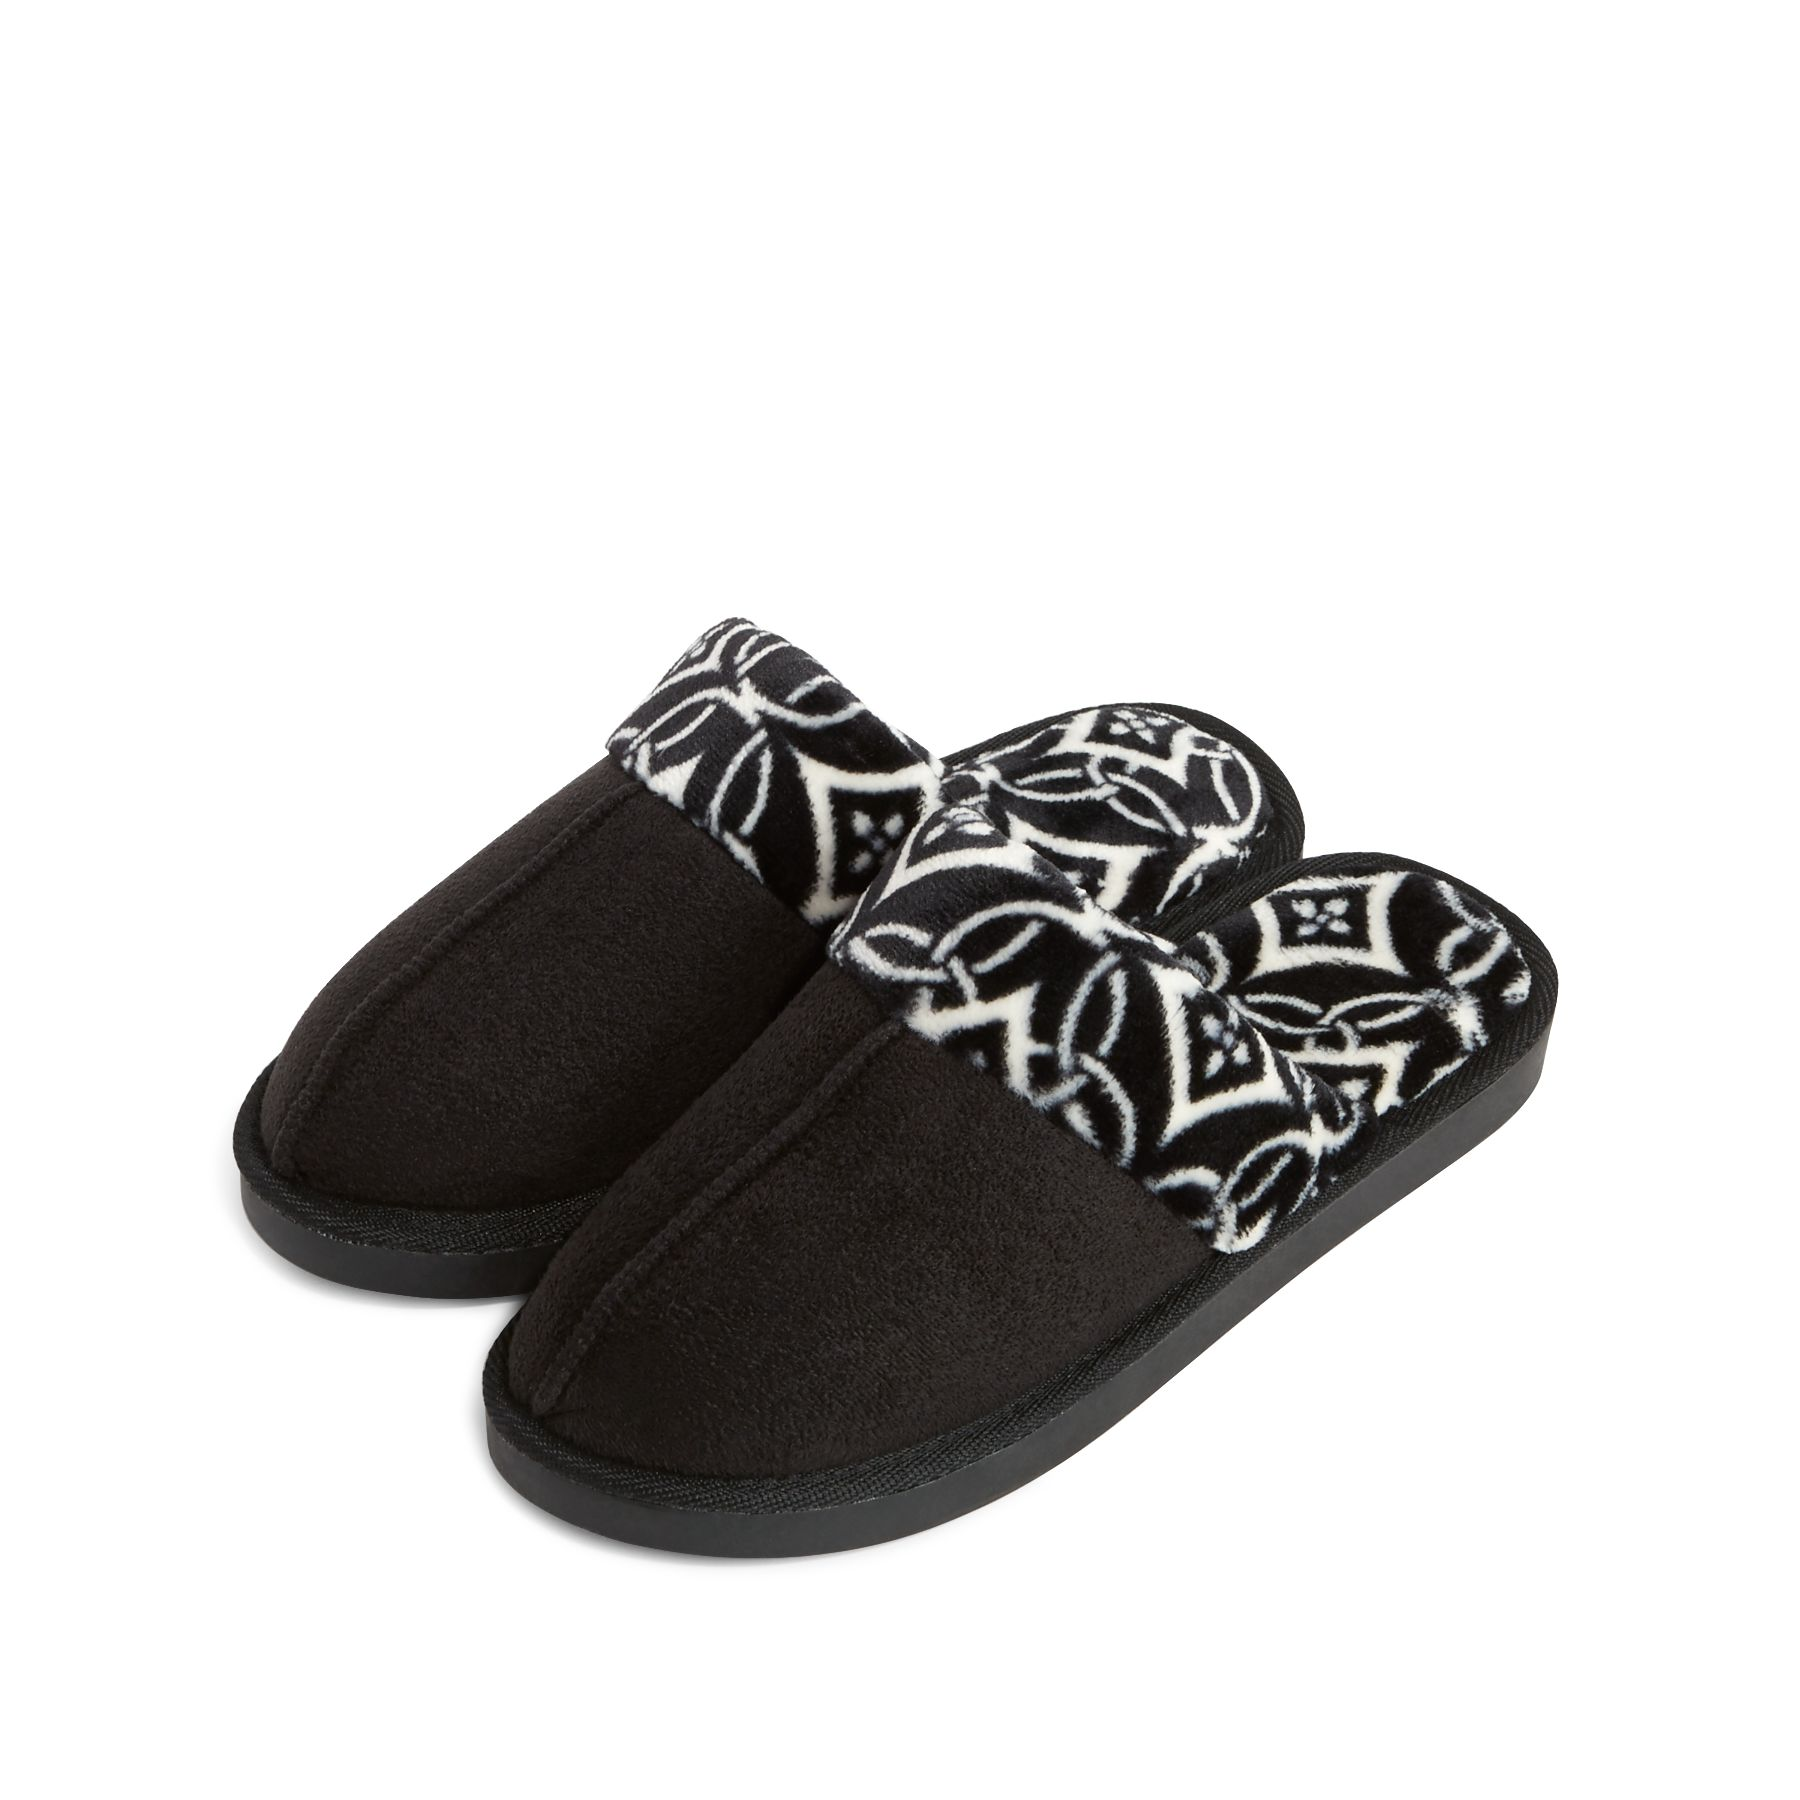 Vera Bradley Cozy Womens Slippers